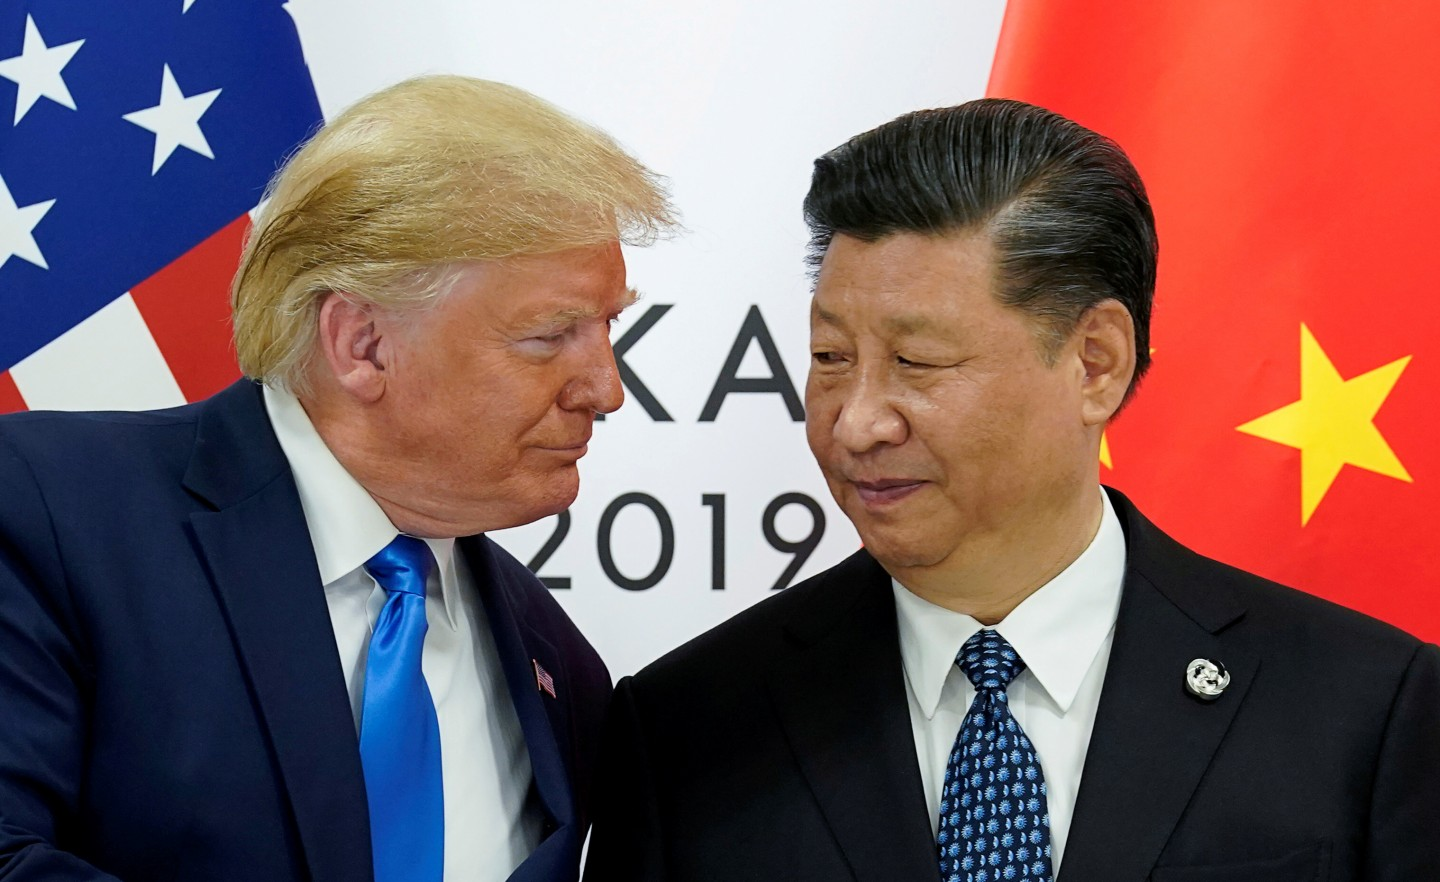 US President Donald Trump meets with China's President Xi Jinping at the start of their bilateral meeting at the G20 leaders summit in Osaka, Japan on 29 June 2019. (Kevin Lamarque/Reuters)